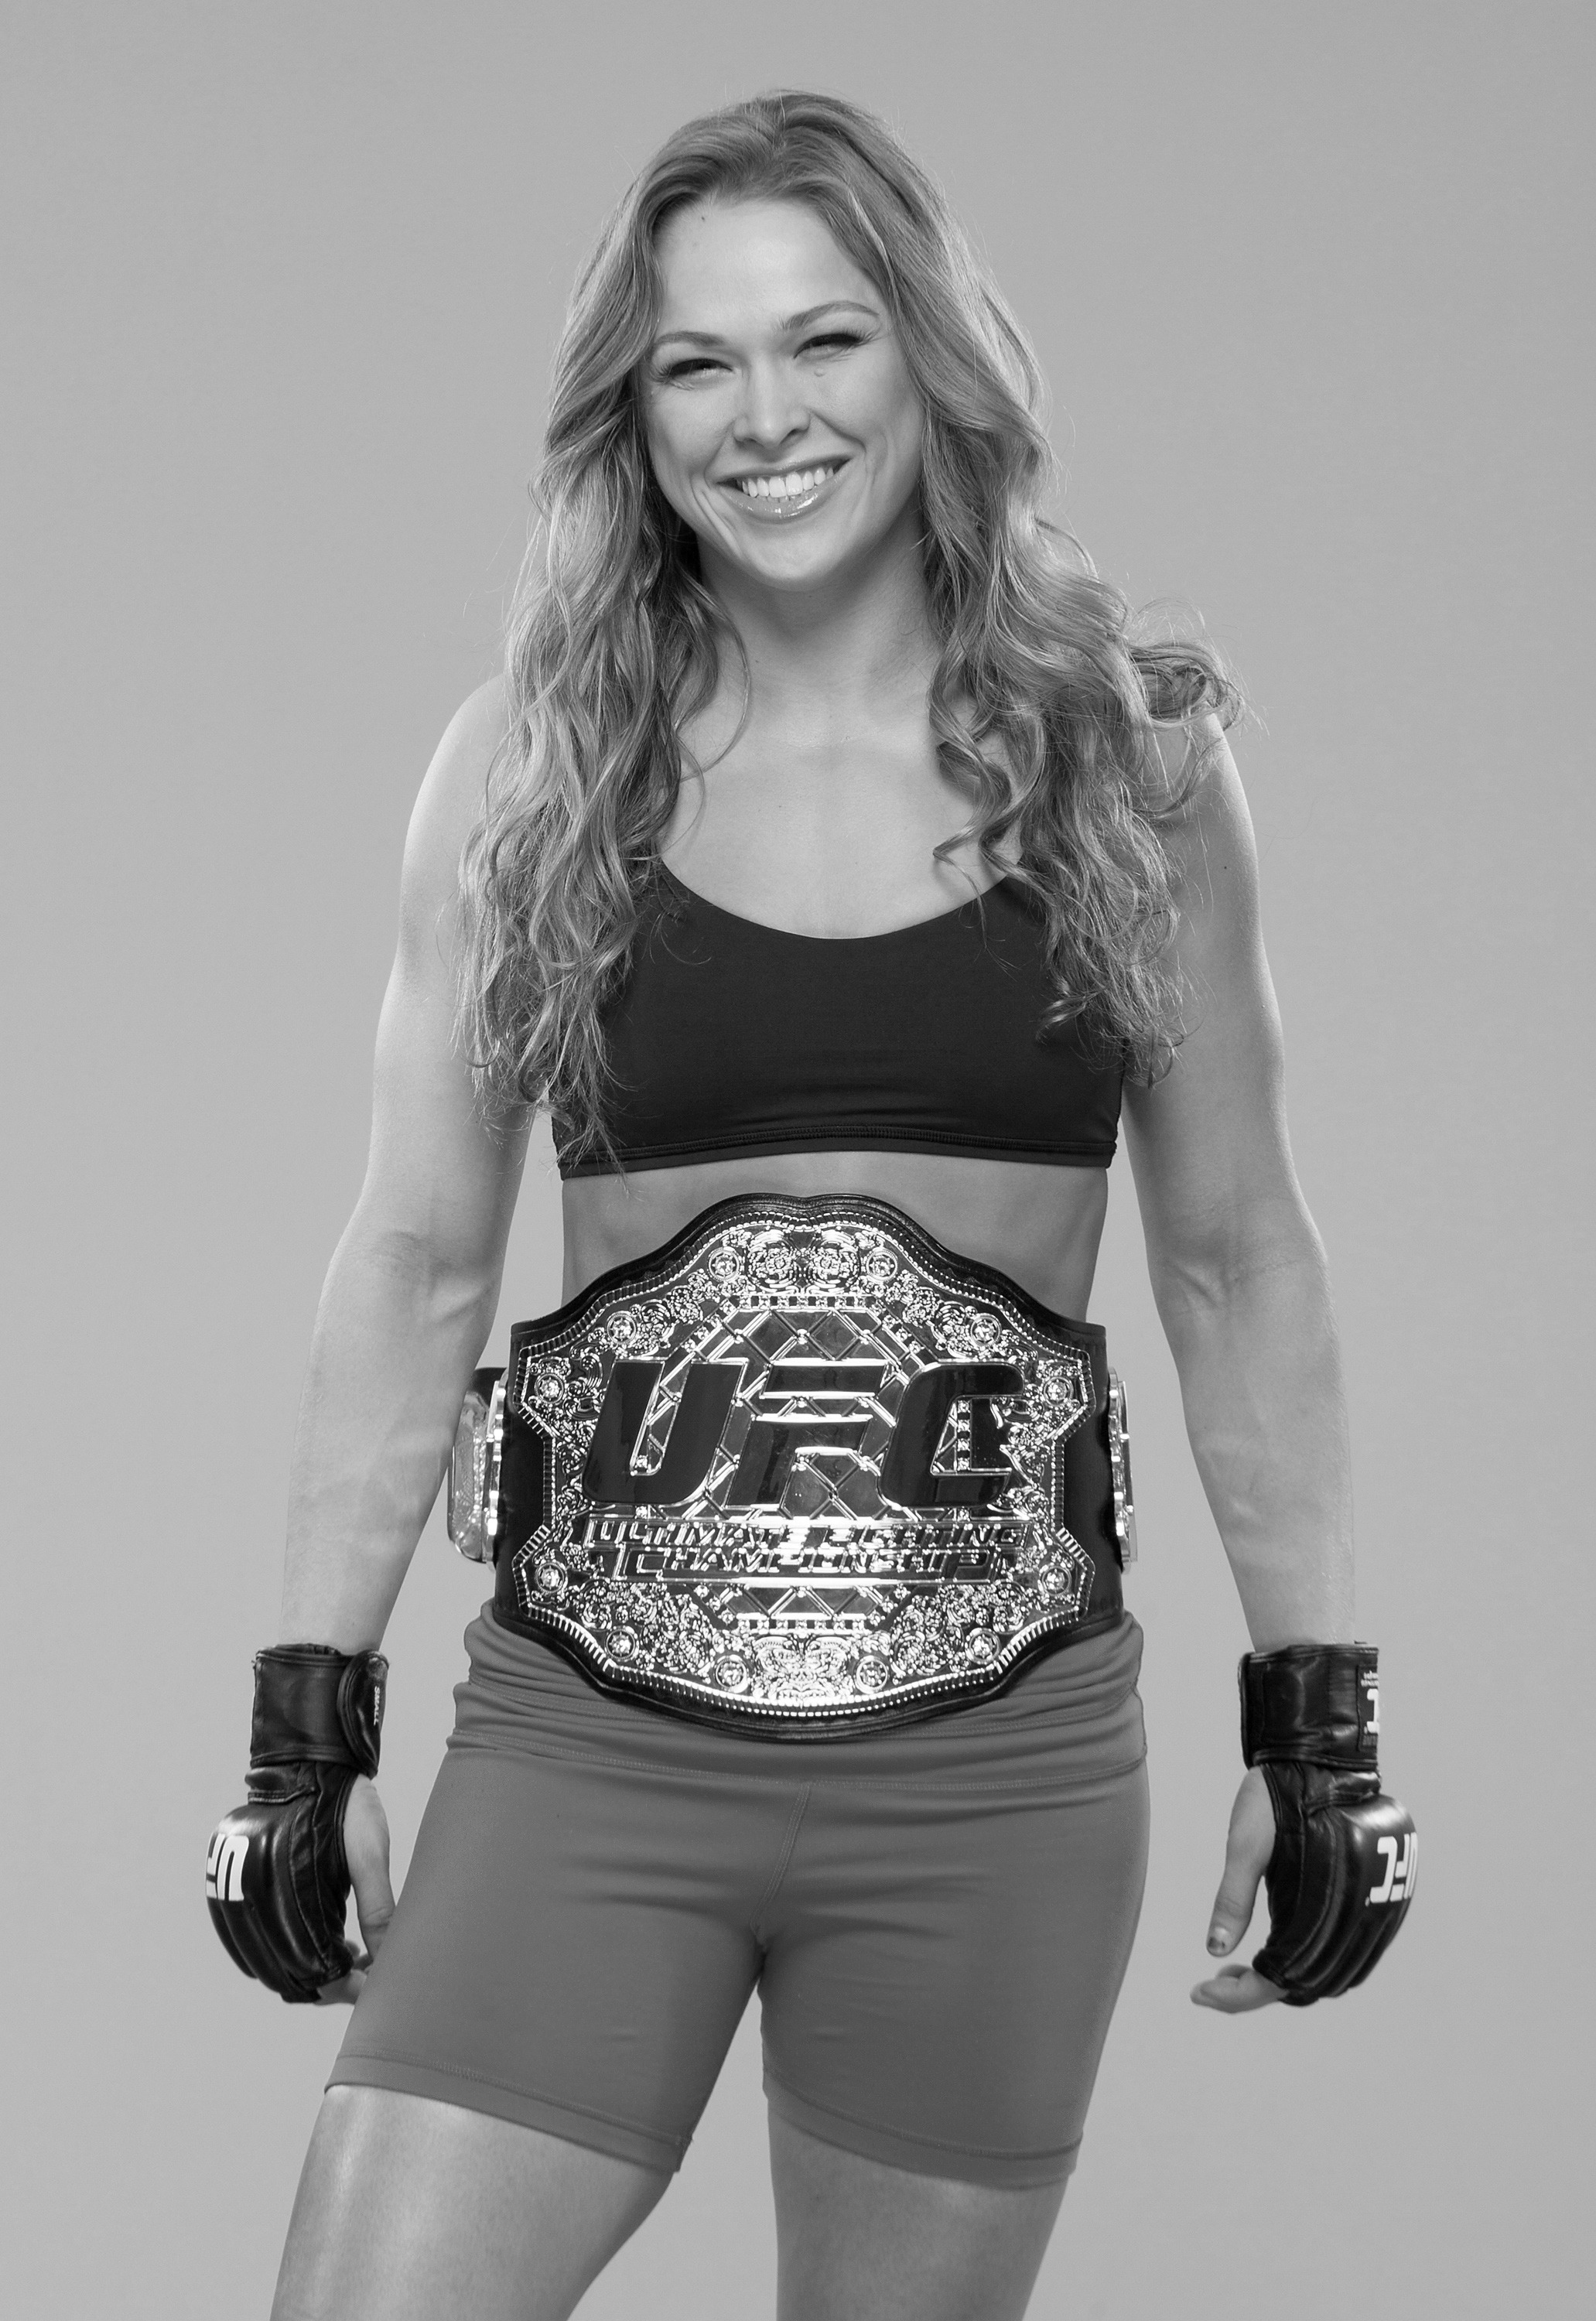 Ronda Rousey poses for a portrait on February 20, 2013 in Anaheim, California.